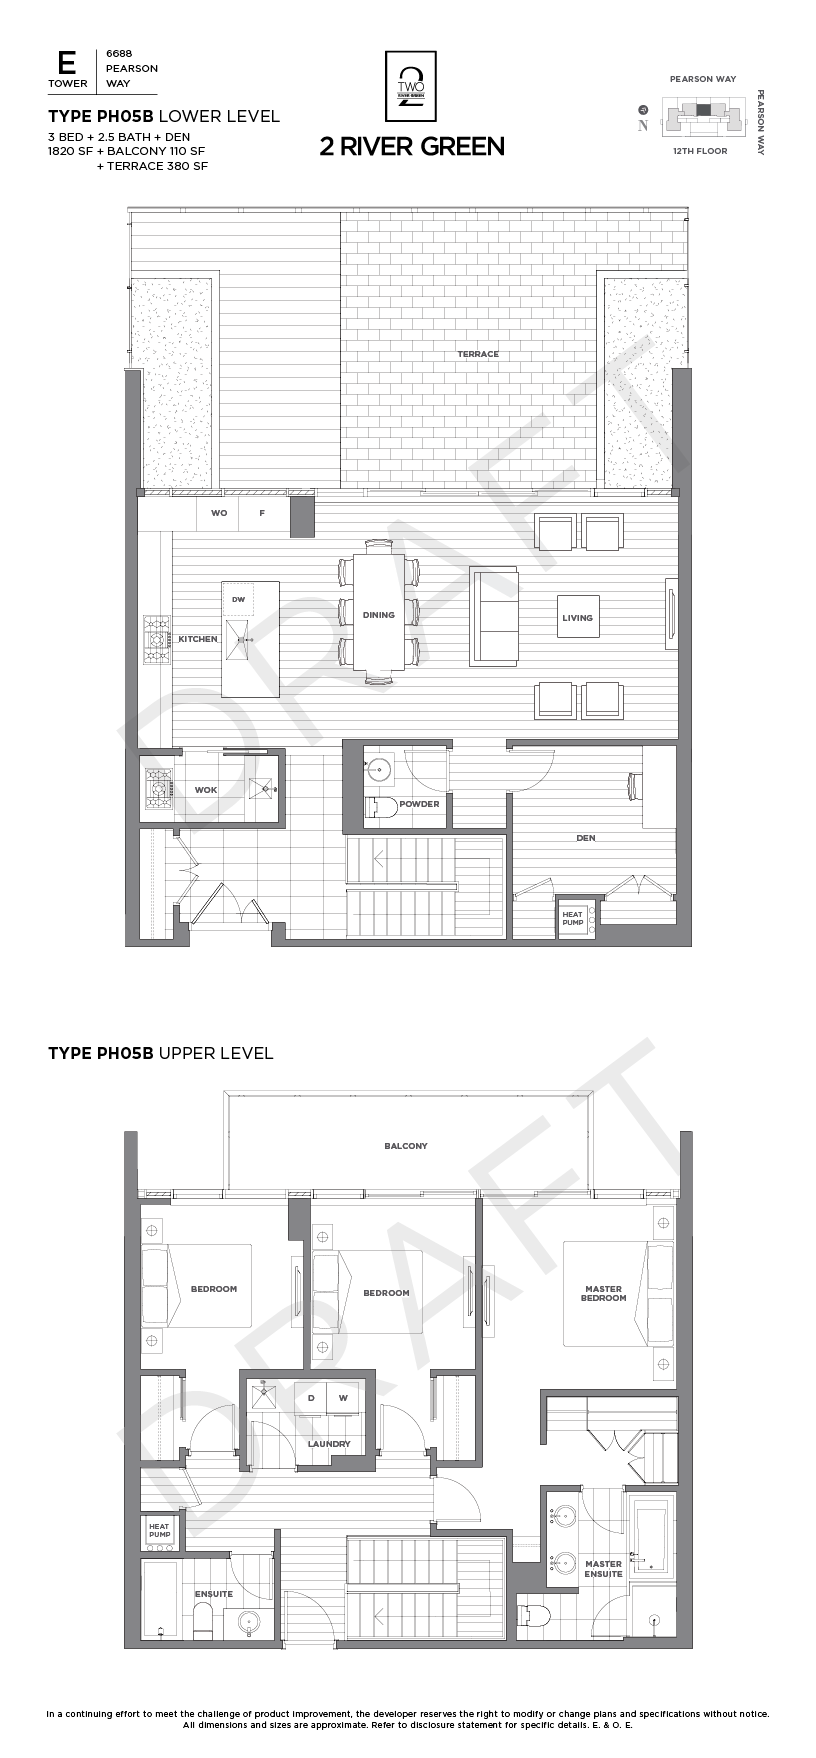 Presentation drawing architecture pdf. Floor plans pearson way